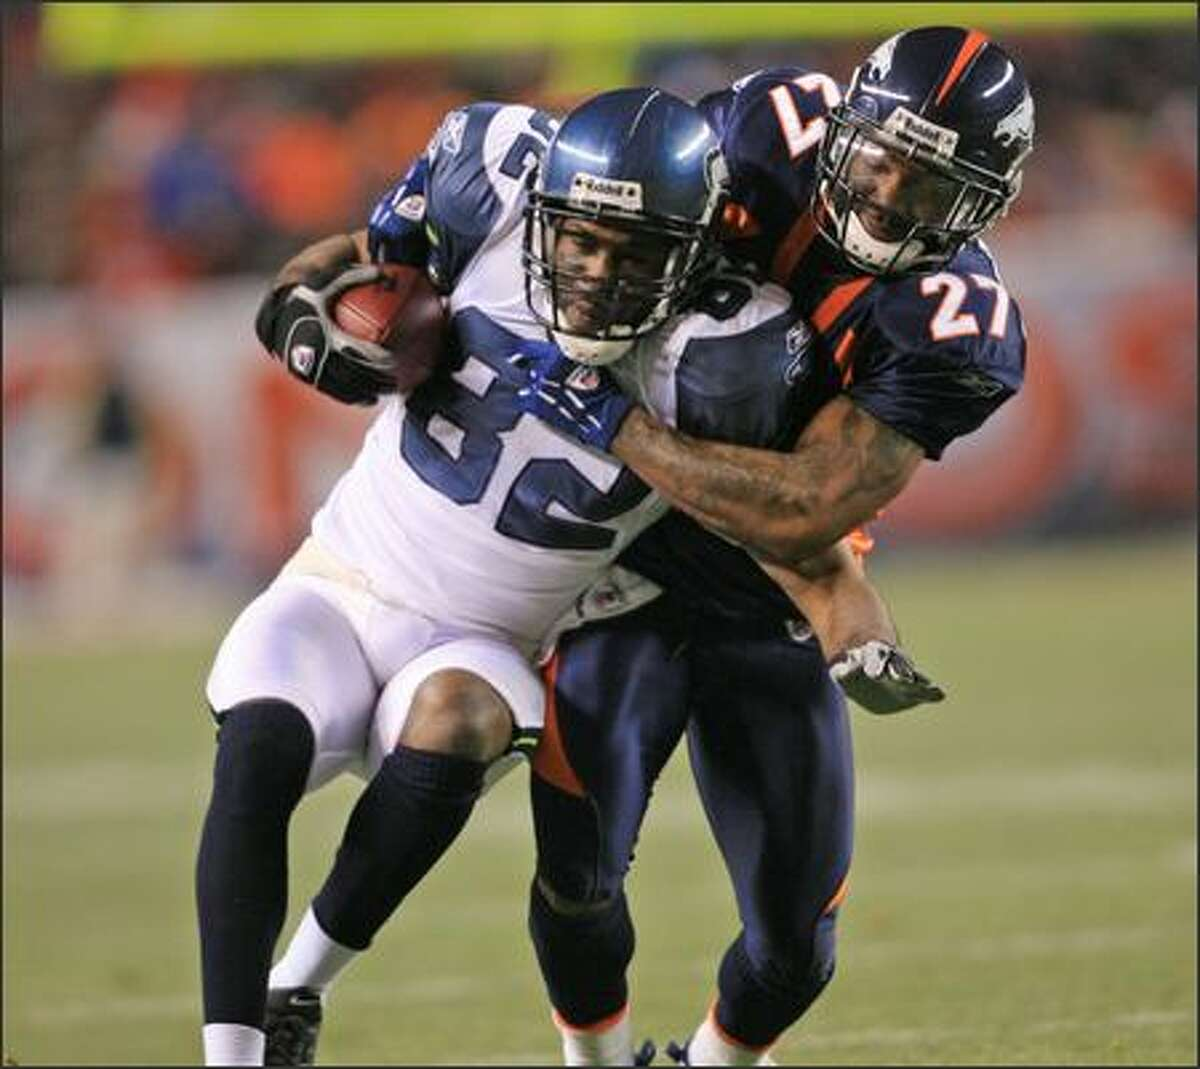 Seahawks wide receiver Darrell Jackson, left, is dragged down by Denver Broncos cornerback Darrent Williams after pulling in a pass for for 7 yards during the first quarter.